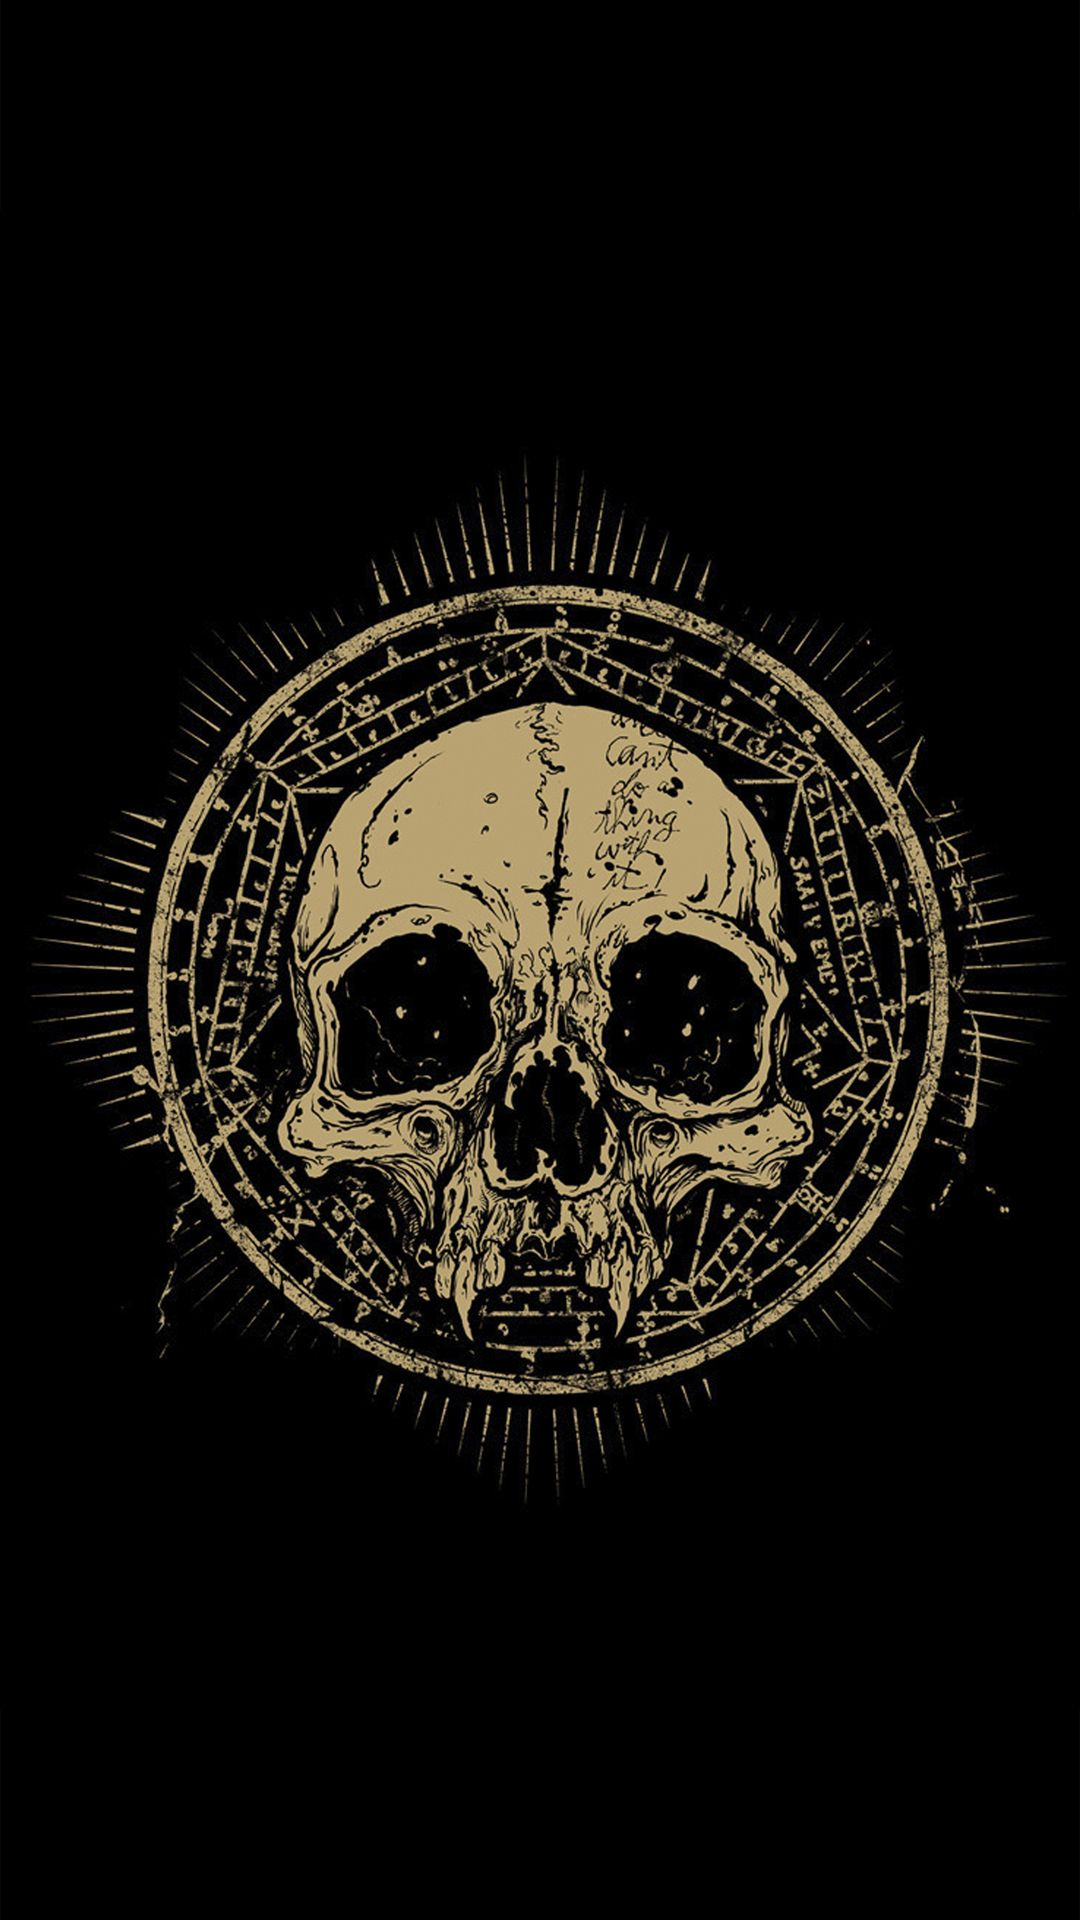 Iphone wallpaper tumblr skull - Skull Talisman Grunge Android Wallpaper Free Download